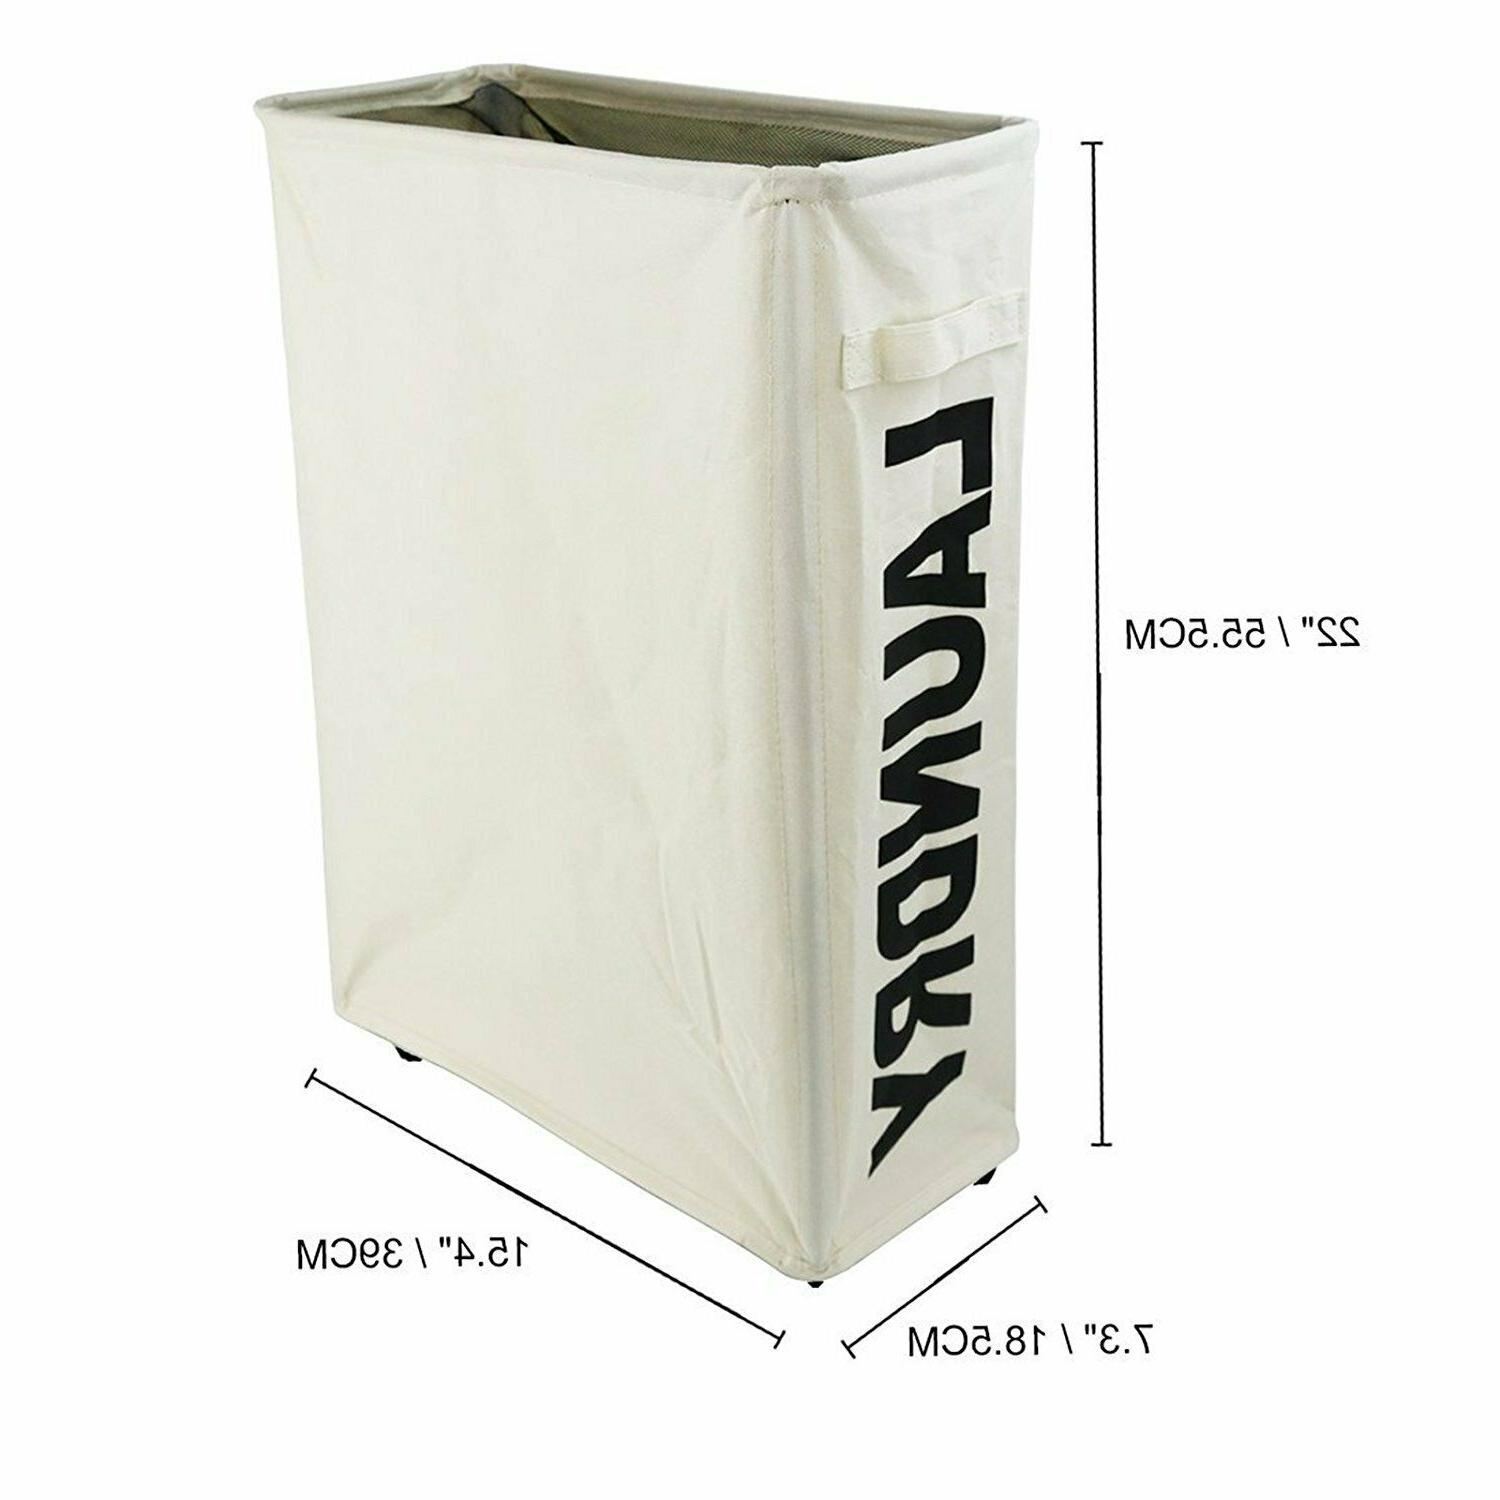 "Caroeas 22"" Rolling Laundry Basket Thin Laundry"